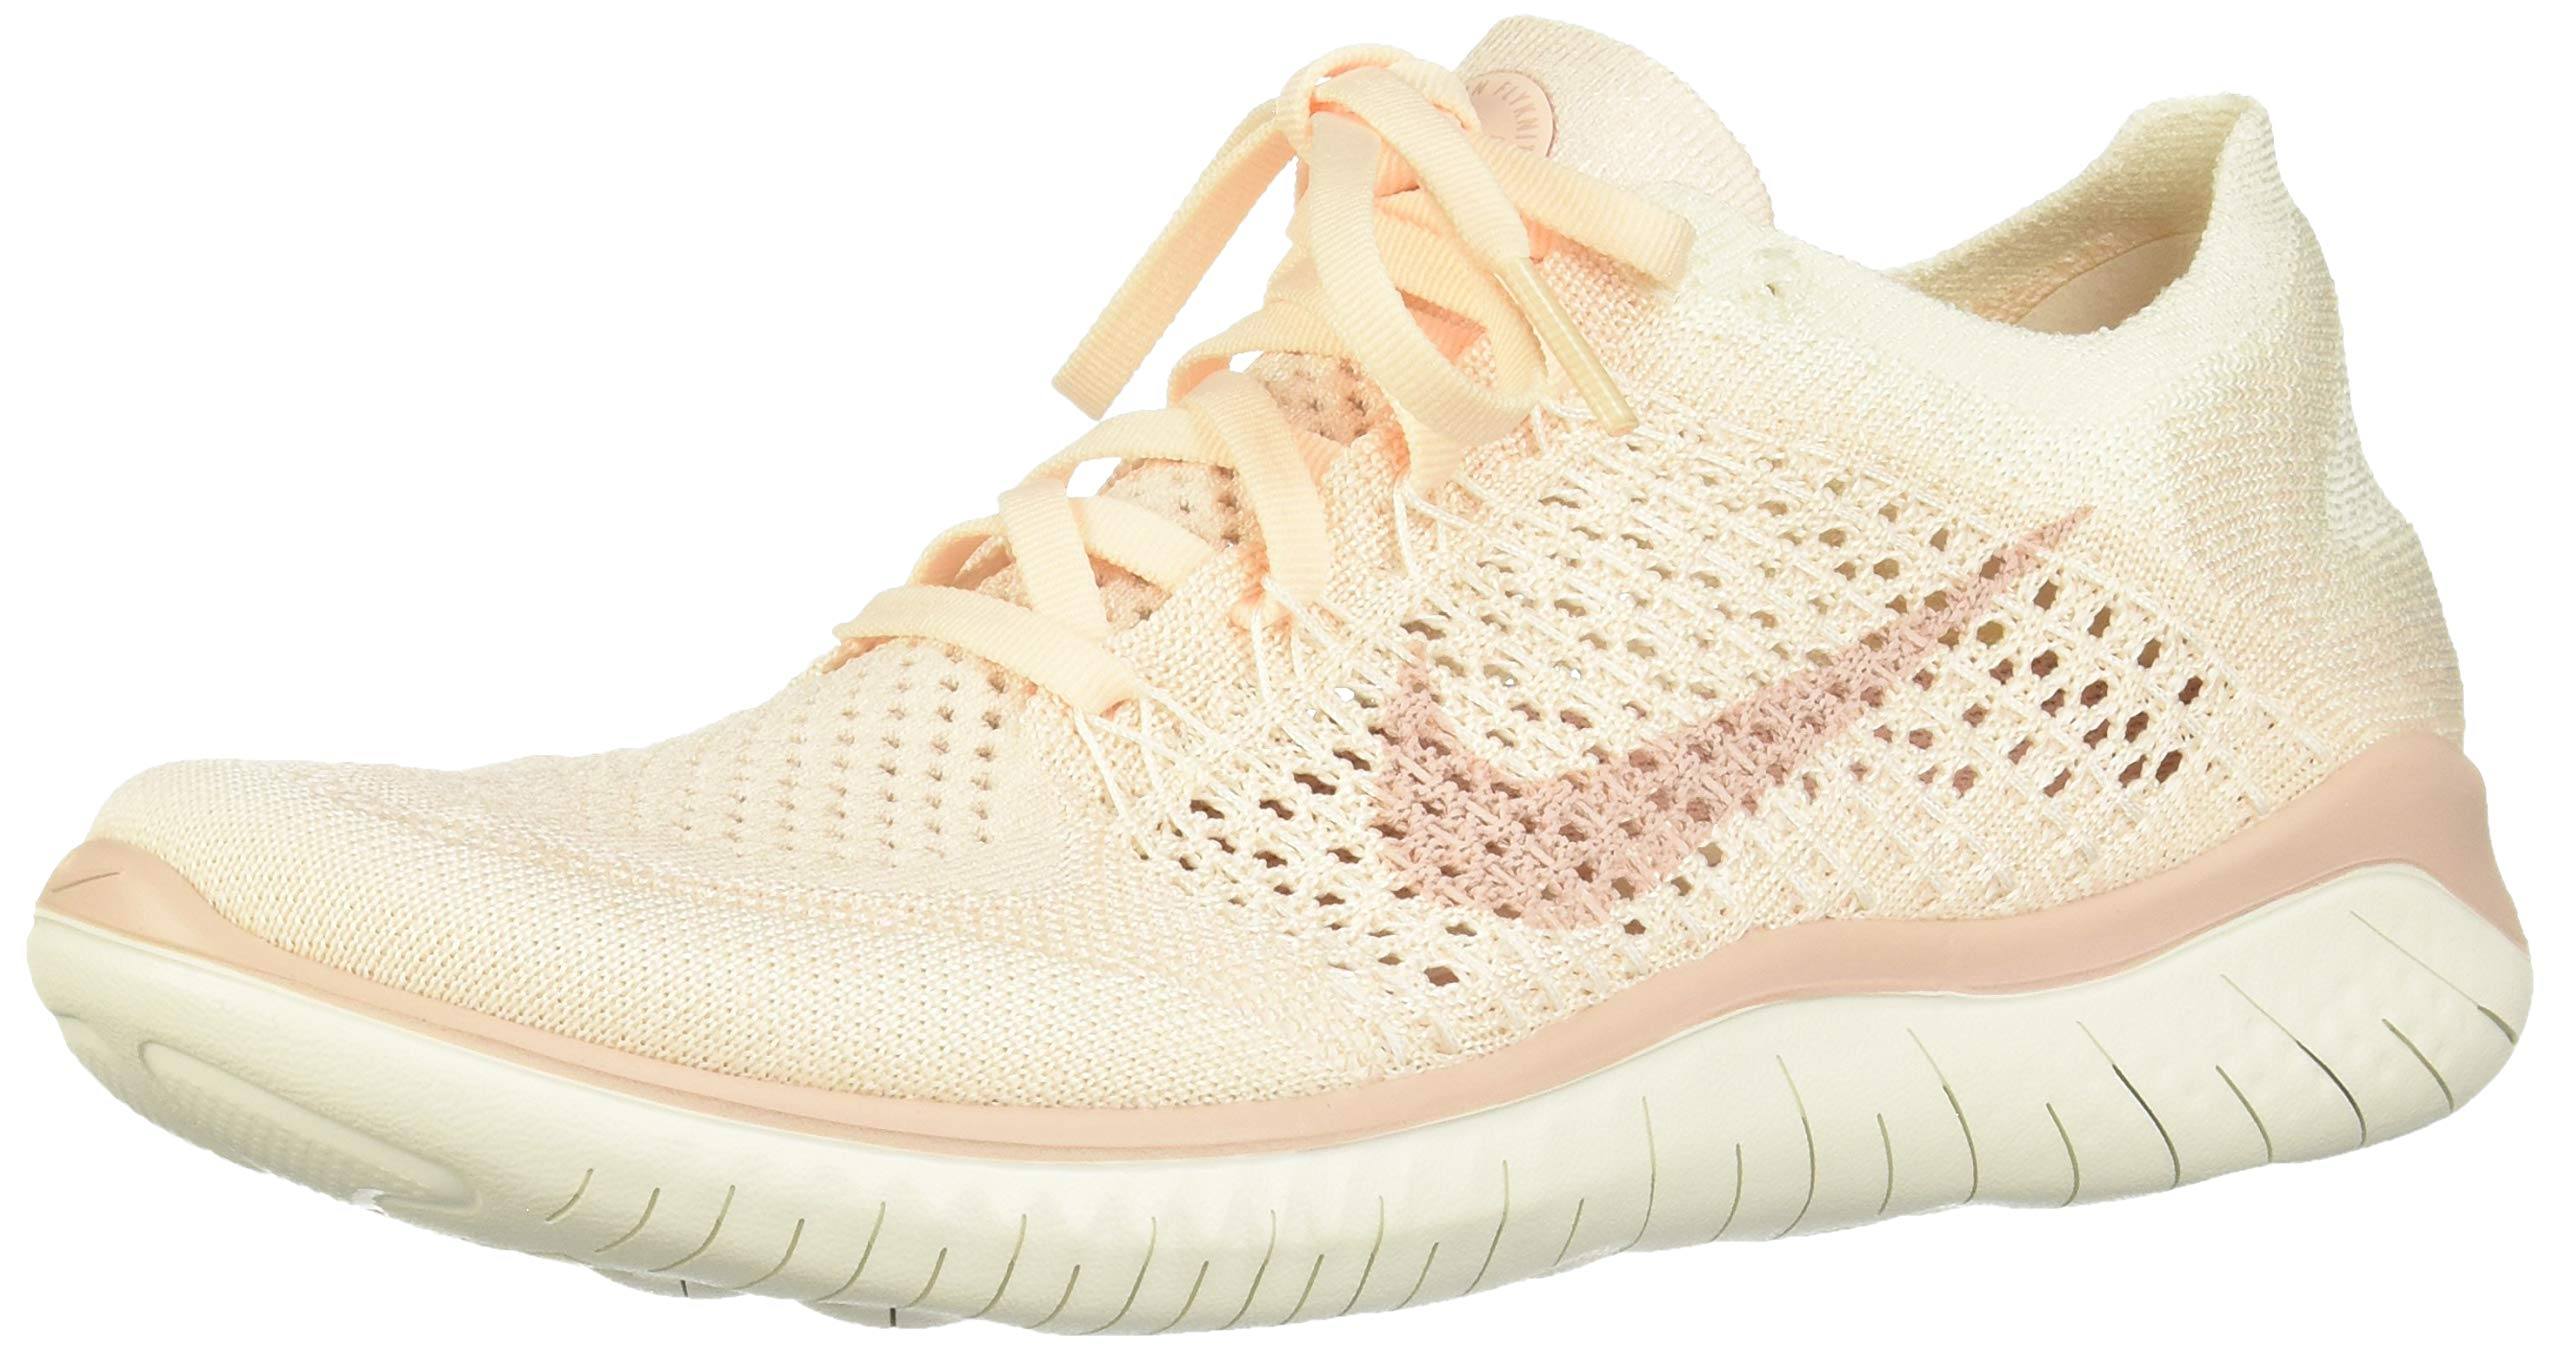 71rSxd8CazL - Nike Women's Free Rn Flyknit 2018 Competition Running Shoes